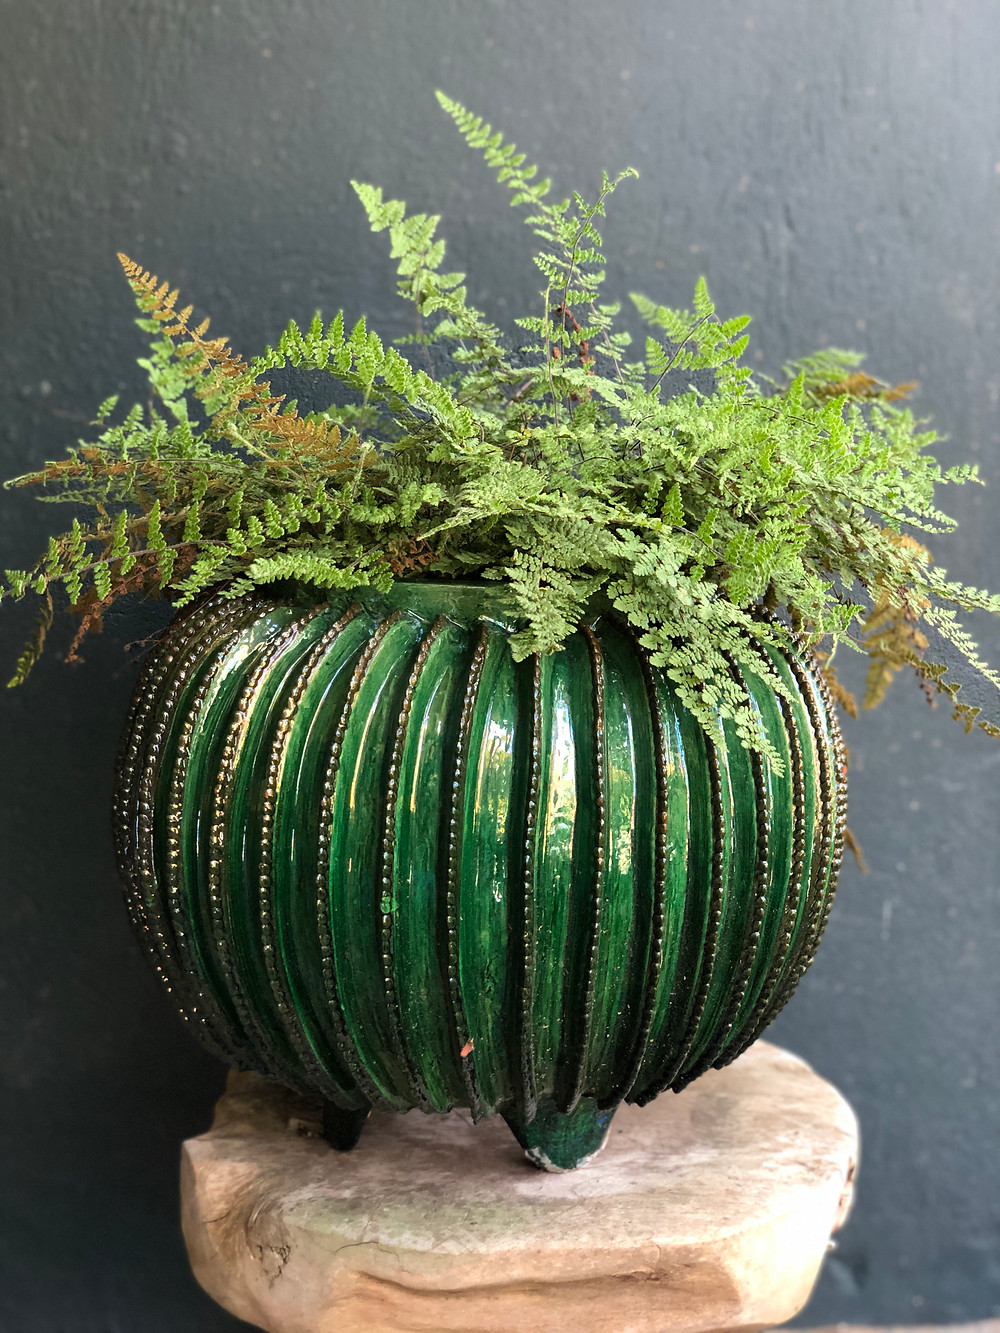 native hairy lip fern in container